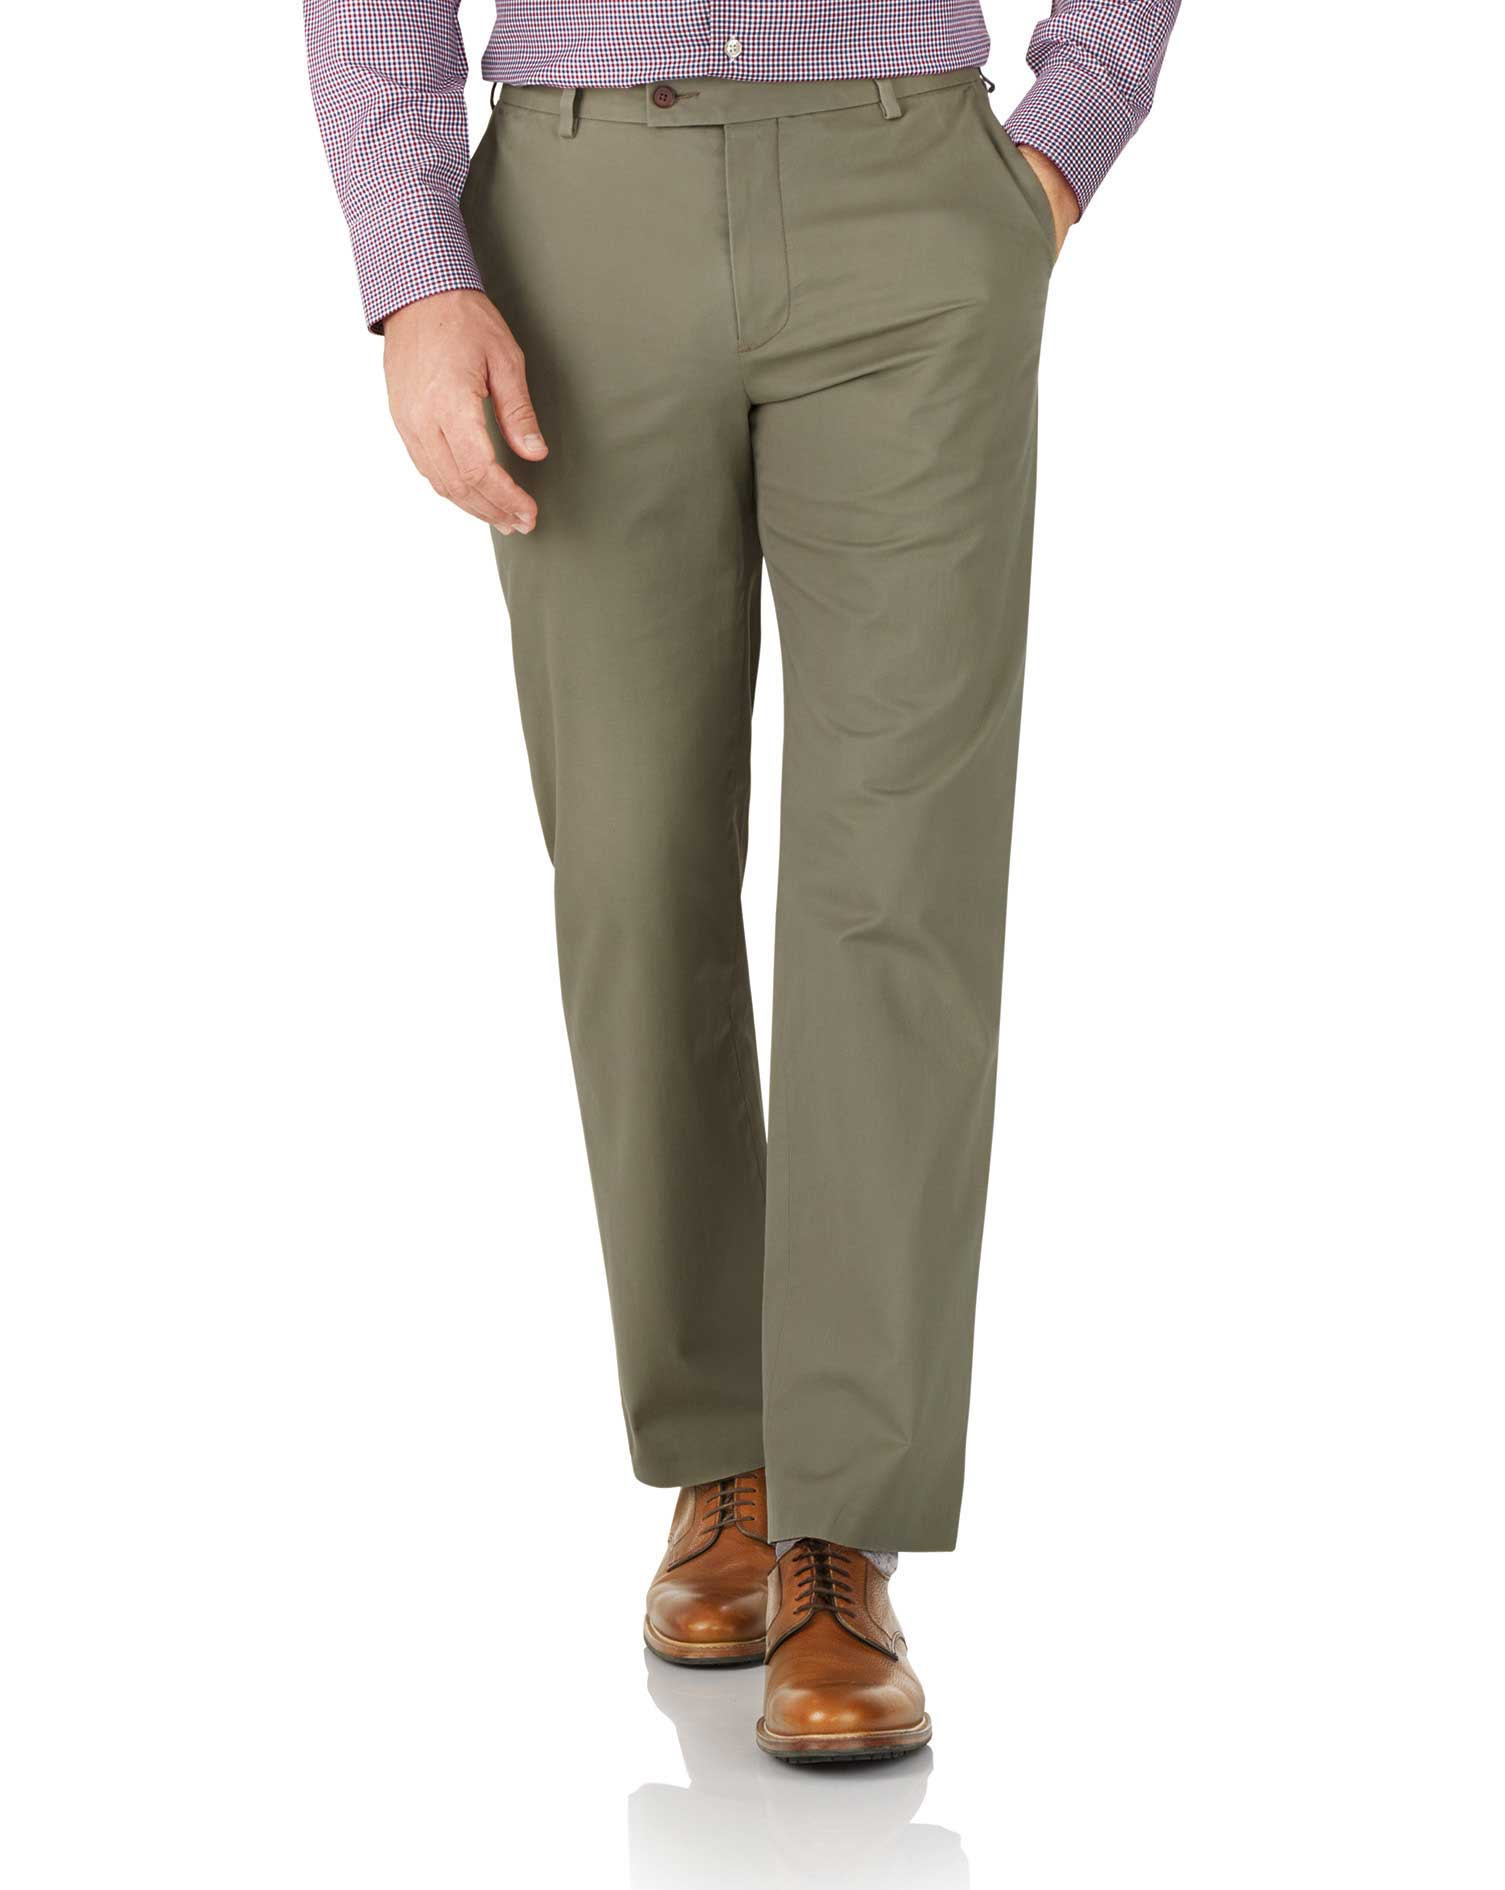 Khaki Classic Fit Stretch Cotton Chino Trousers Size W32 L34 by Charles Tyrwhitt